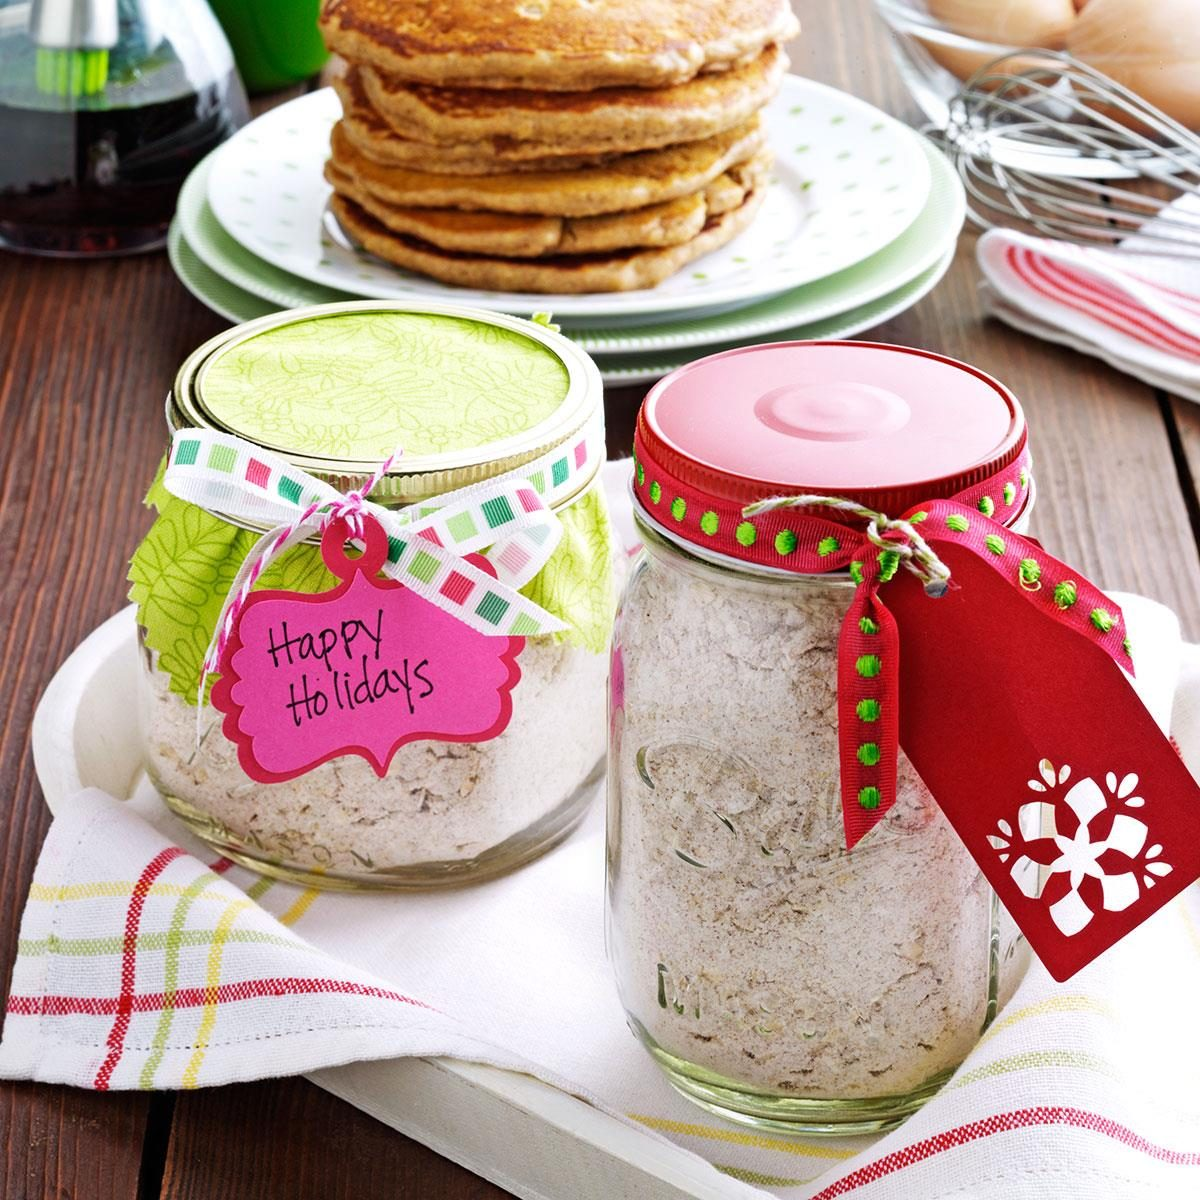 Gift wrapping ideas for home made baked goods - Pancakes From The Pantry